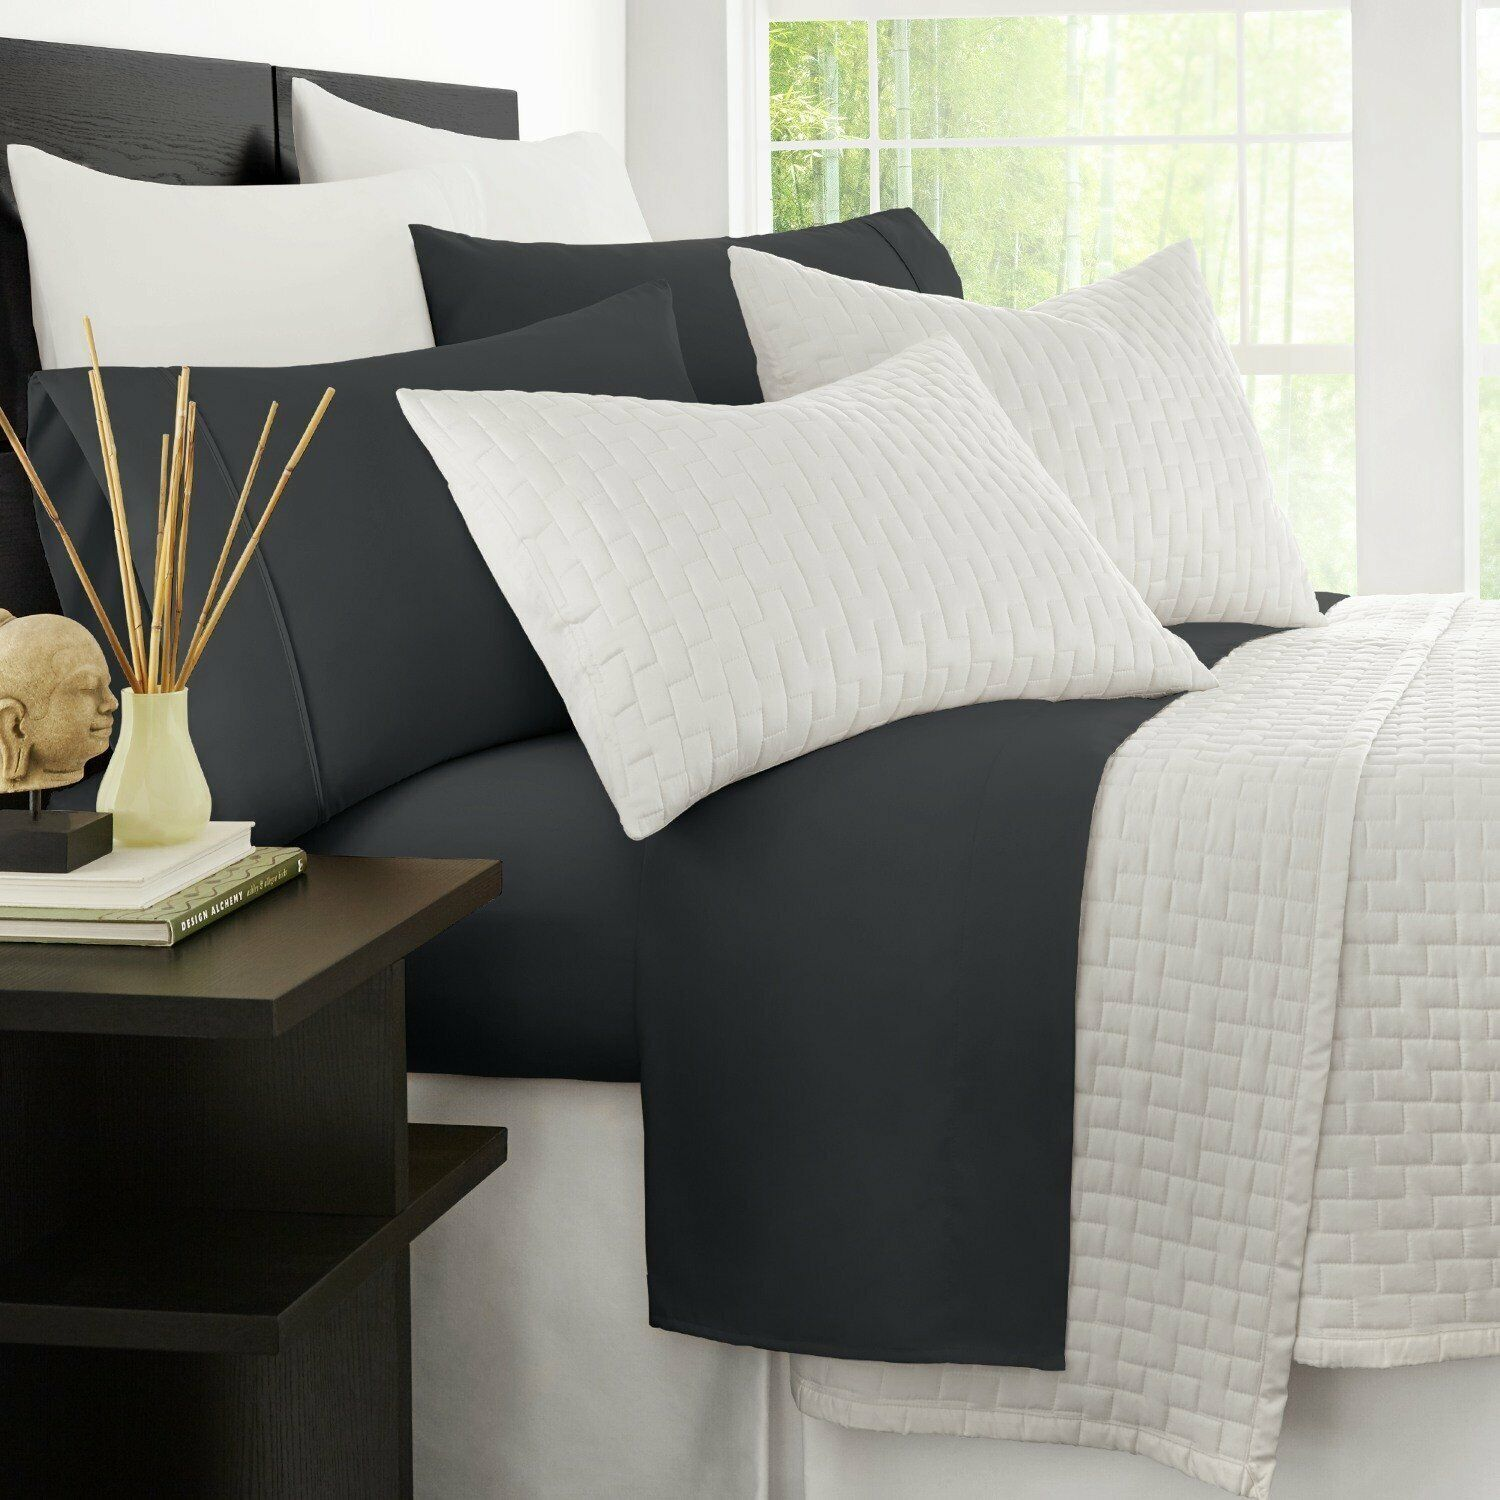 Zen Bamboo Luxury 1500 Series Bed Sheets - Eco-friendly,